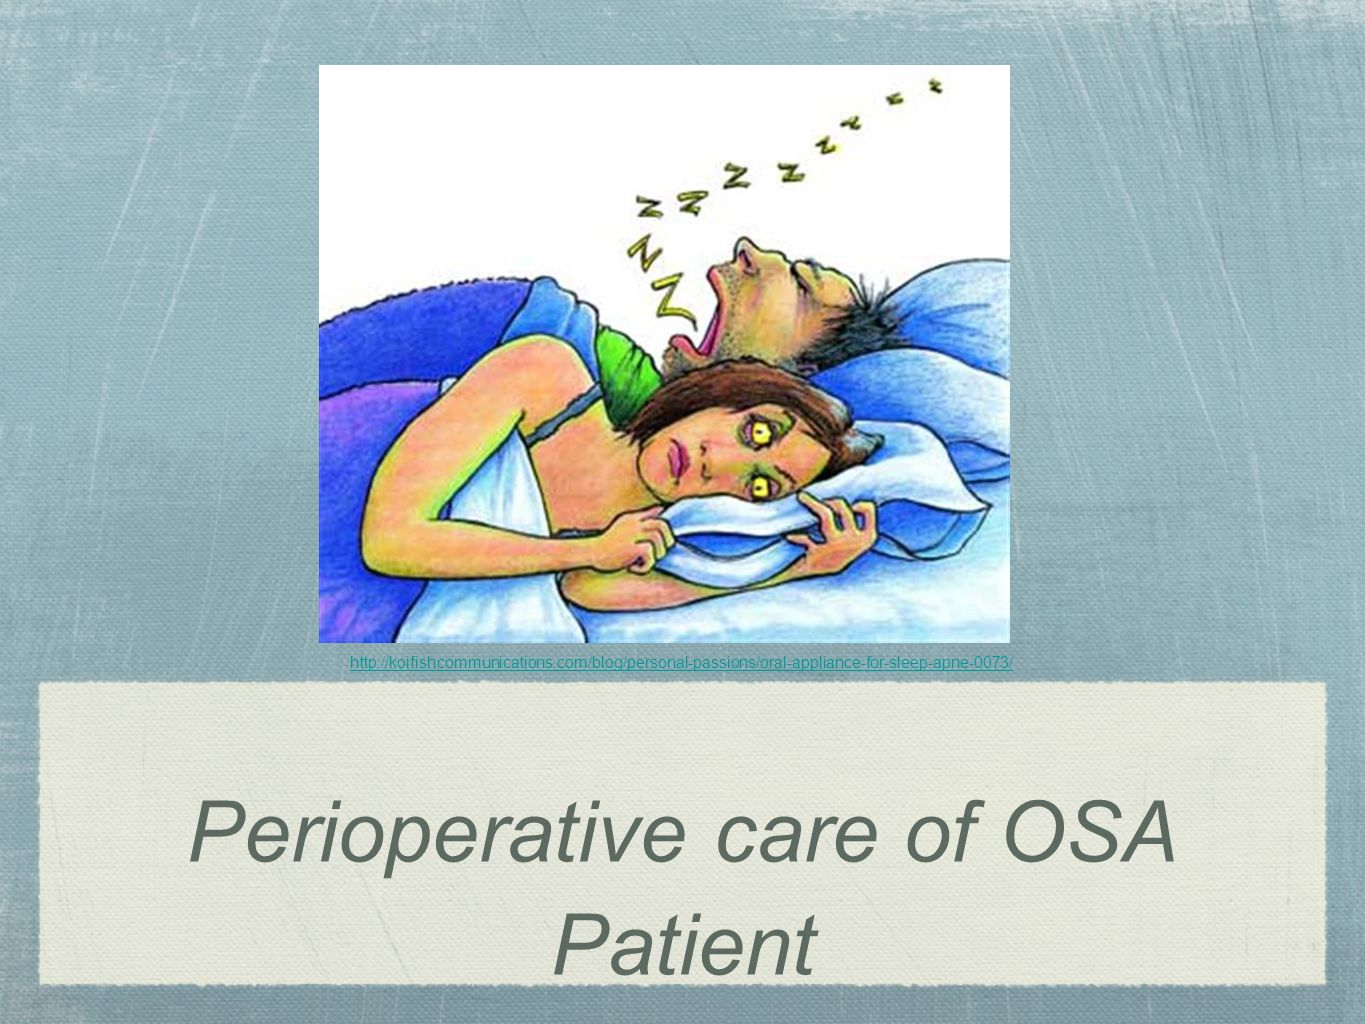 Perioperative care of OSA Patient